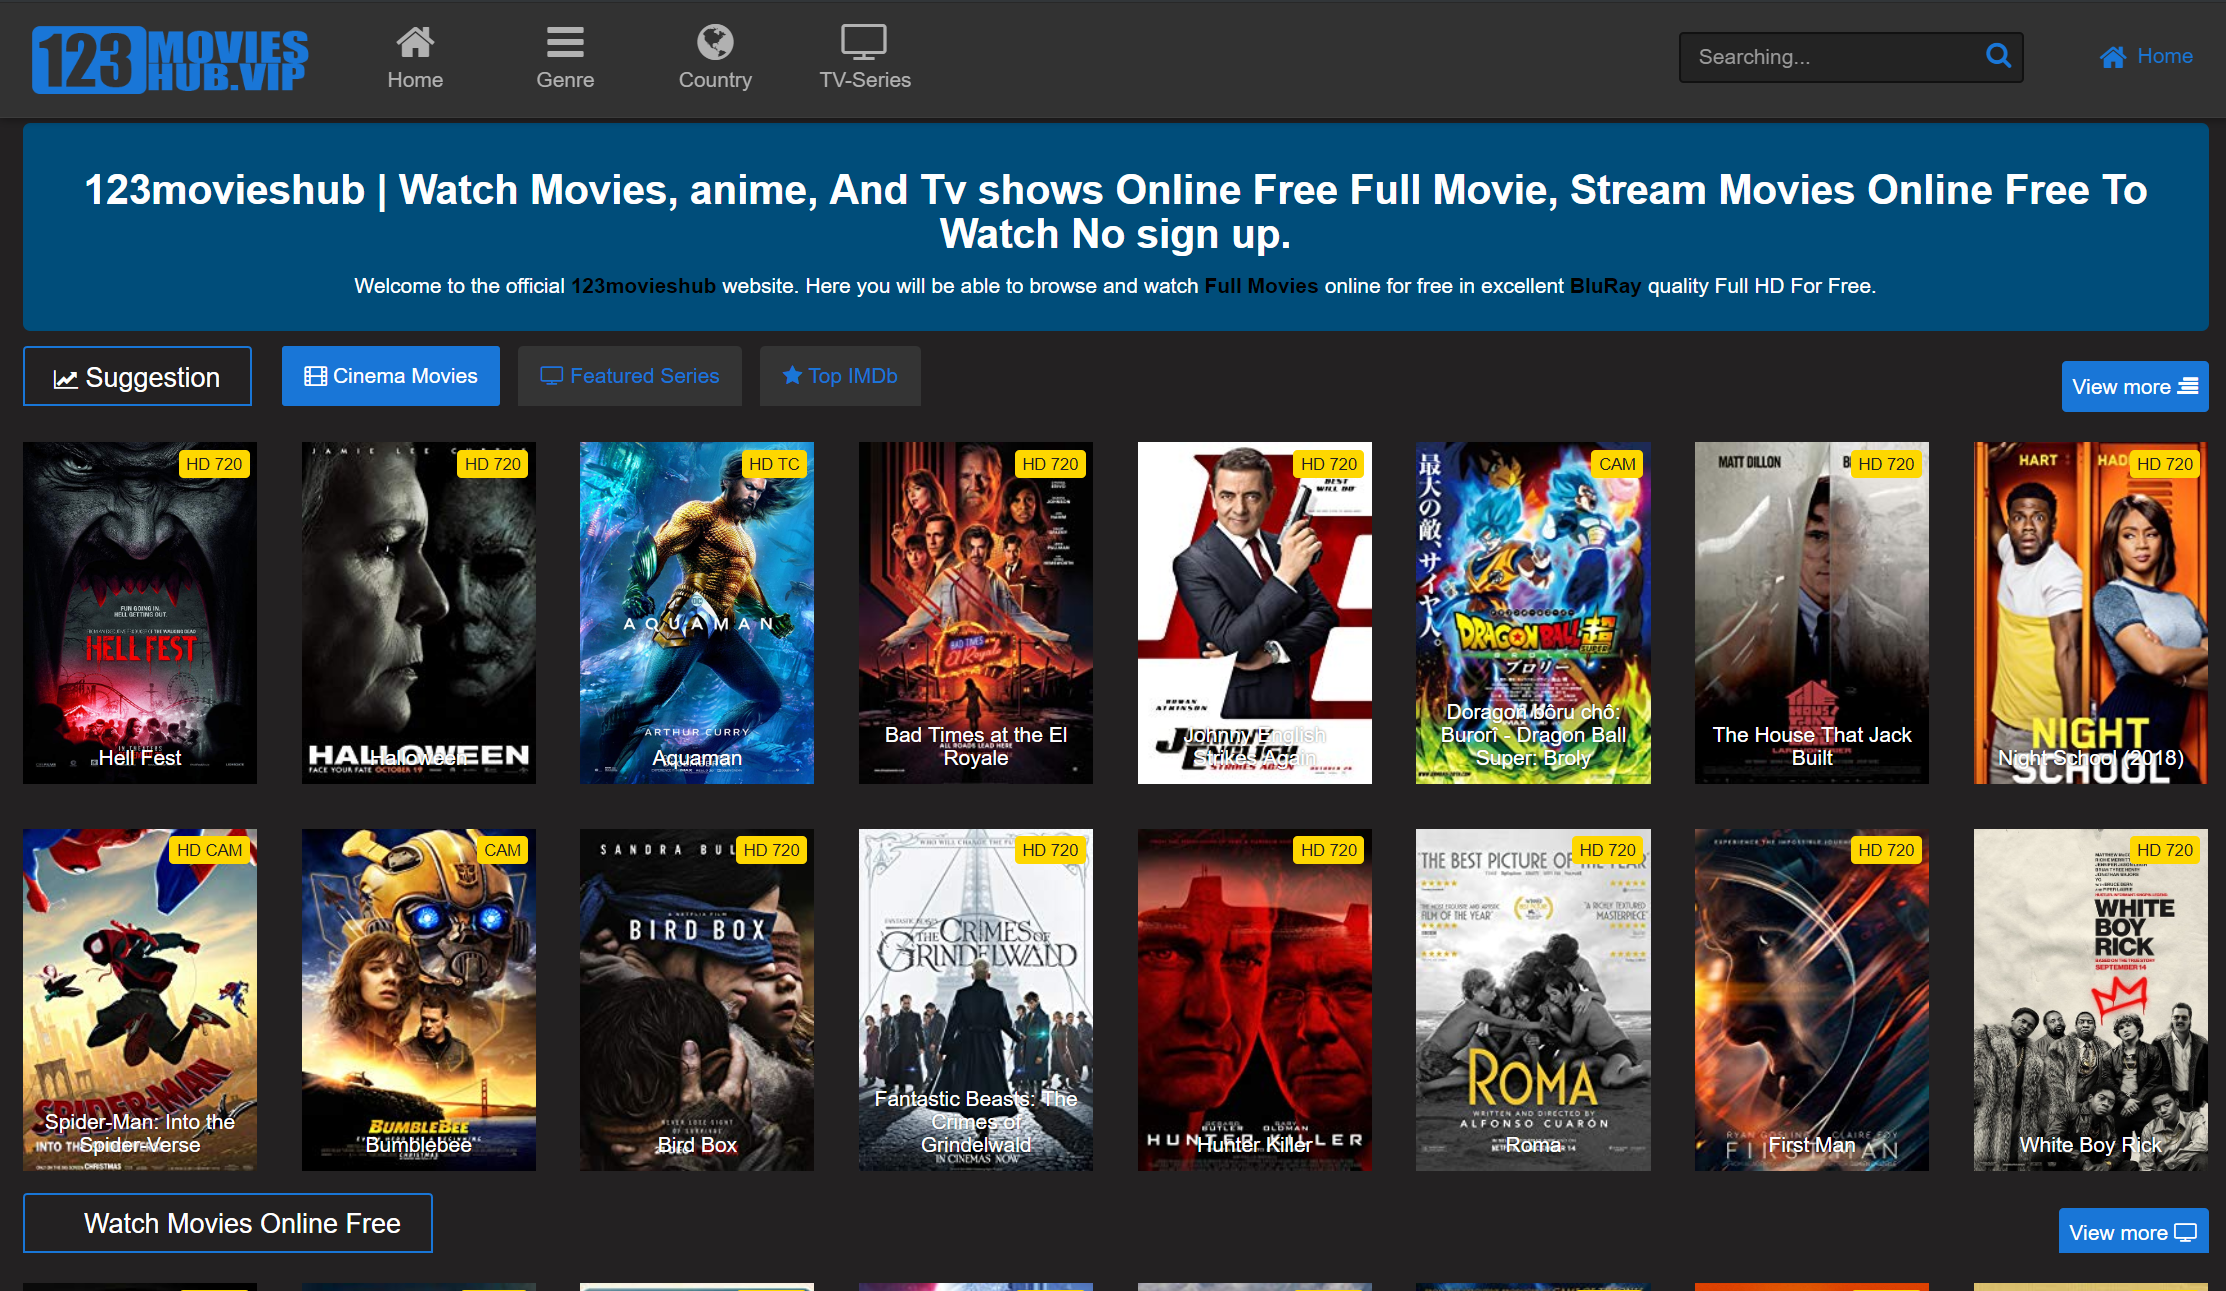 123movies Watch 123 Movies Free Online Stream 123movies Streaming Movies Free Free Movies Online Streaming Movies